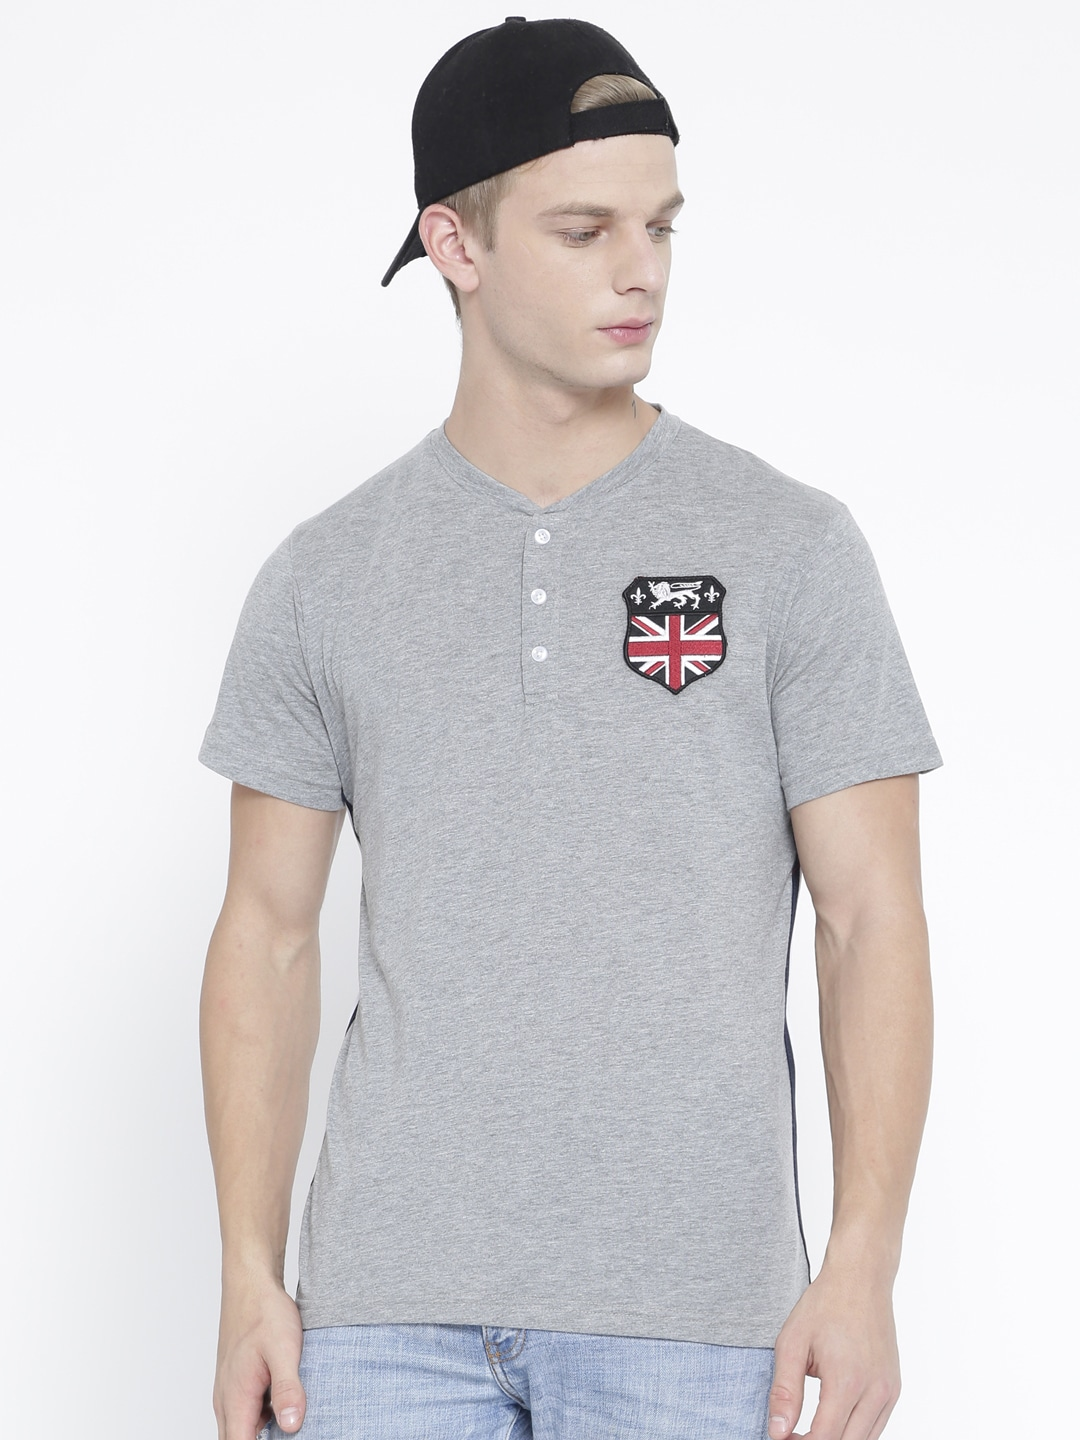 d19a60fd T Shirt - Buy T Shirt online in India